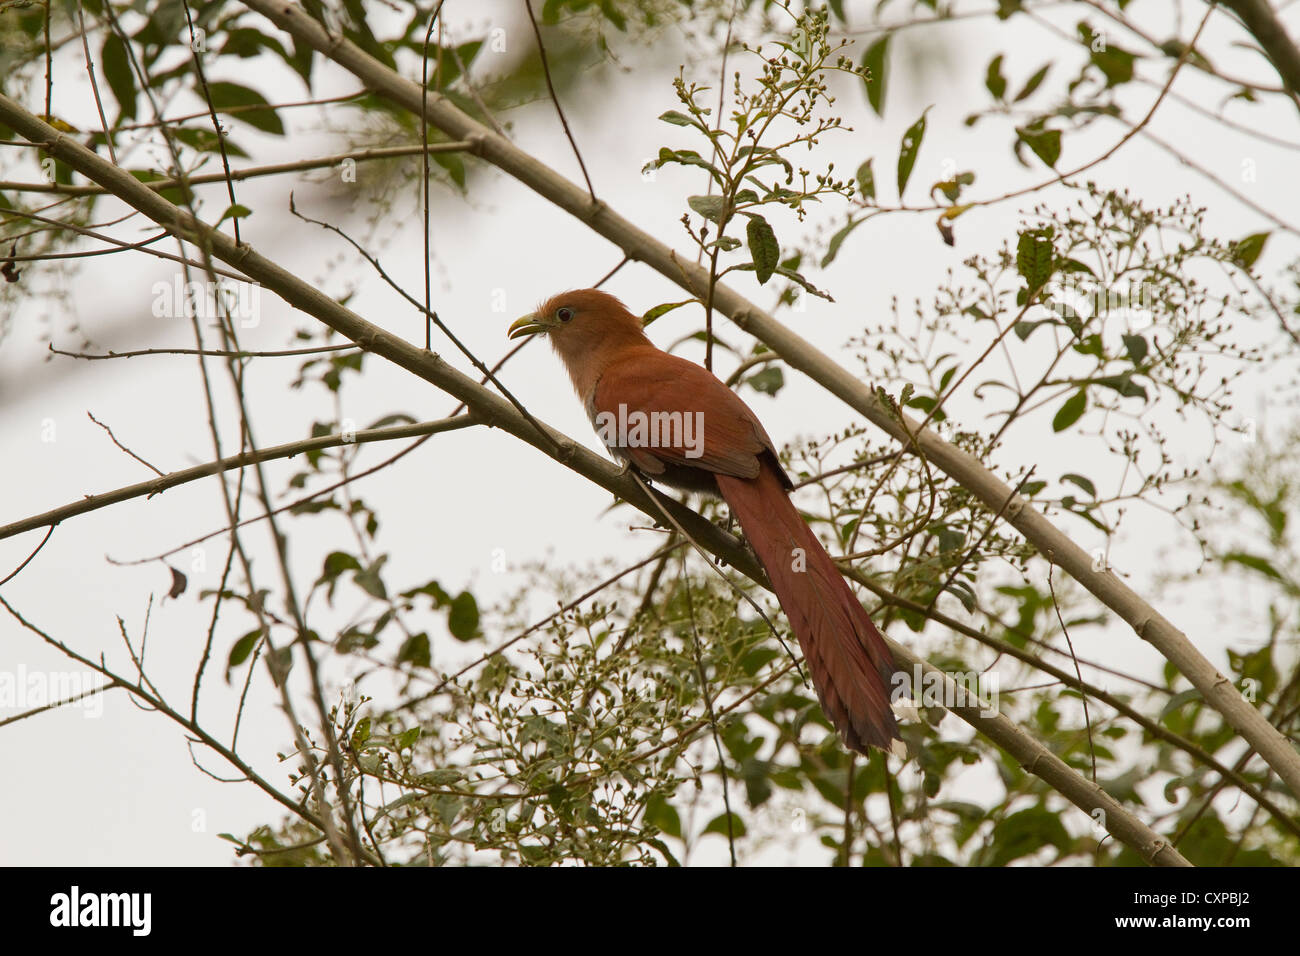 Squirrel Cuckoo (Piaya cayana) perched on branch, Caribbean foothills, Costa Rica, Central America. - Stock Image